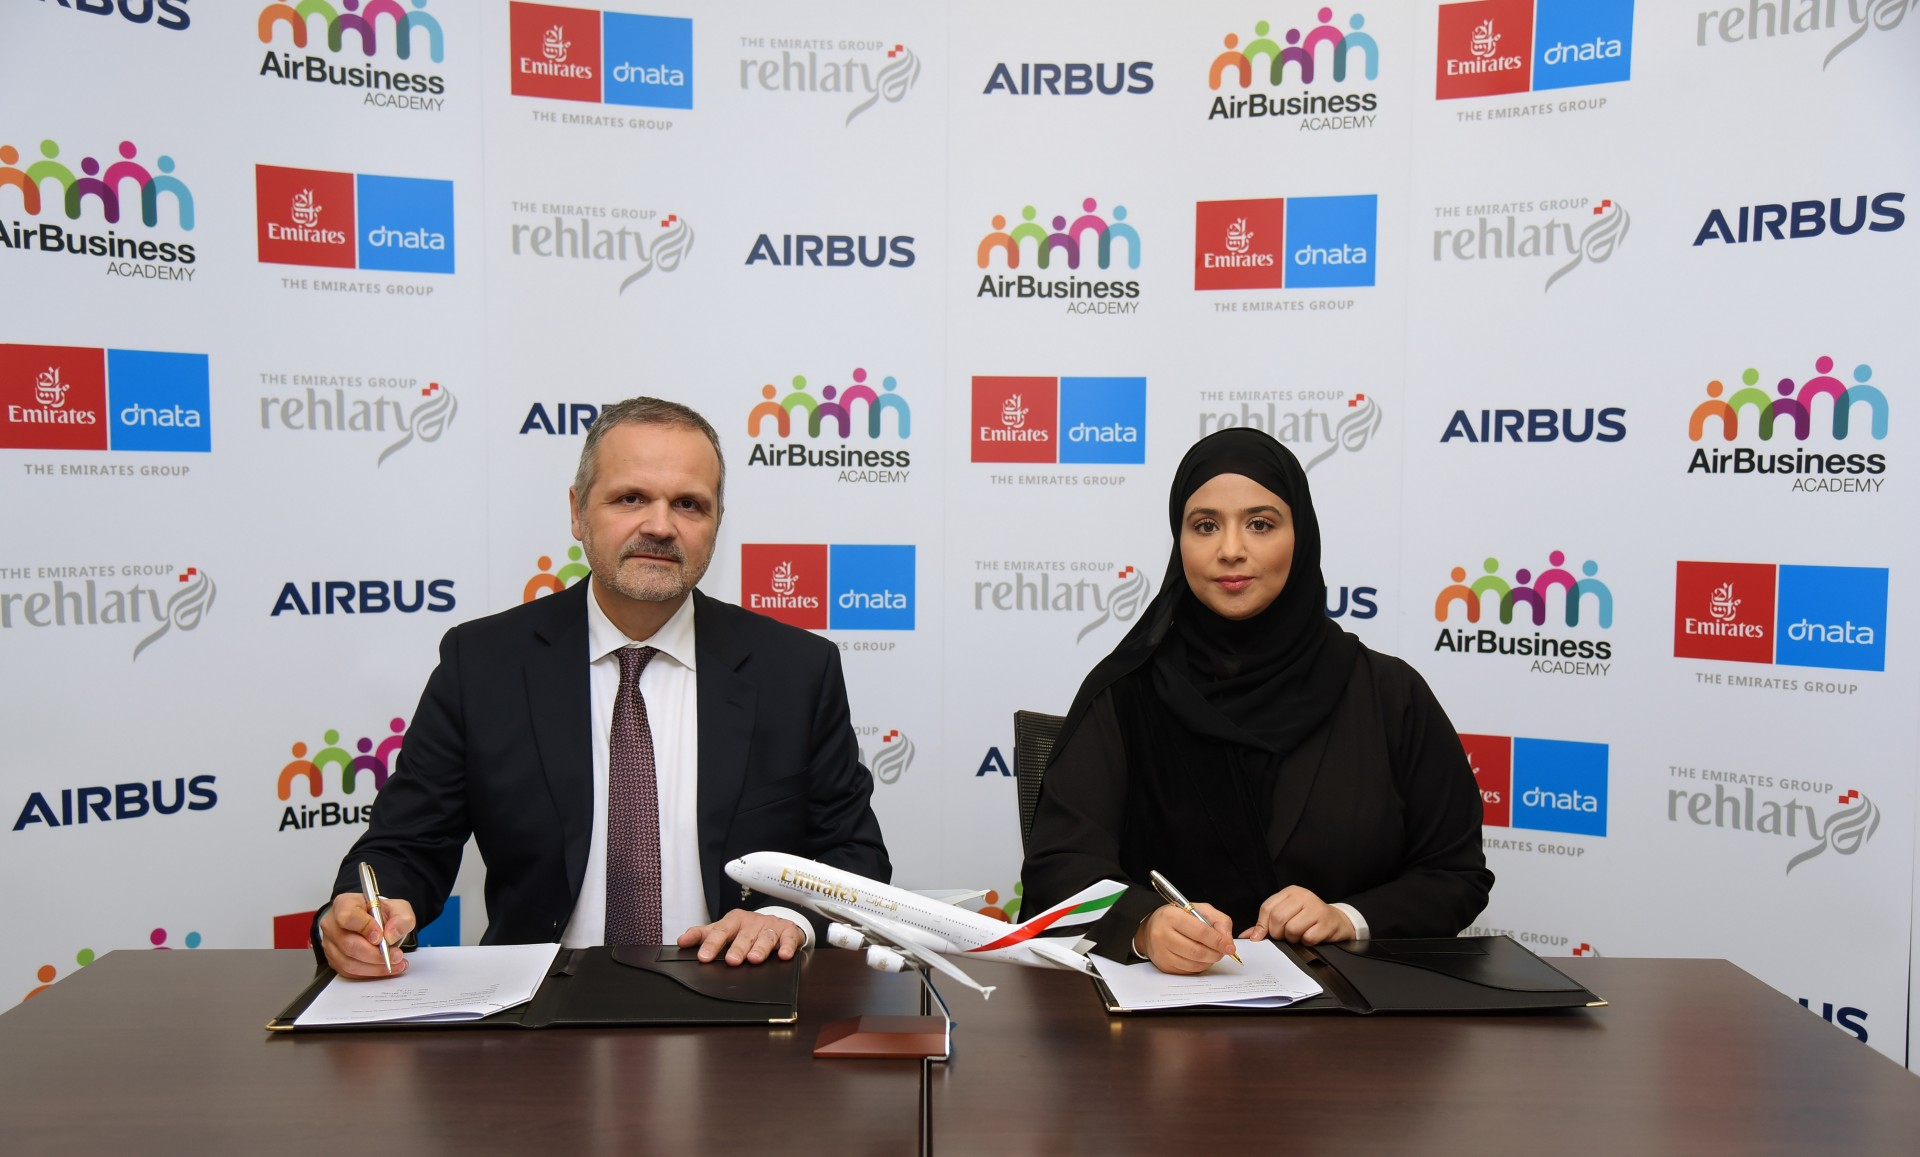 The Emirates Group partners with Airbus to provide leadership programmes for UAE Nationals.  The MoU was signed by Amira Al Falasi, Emirates' Vice President, HR Talent Acquisition and National Talent Development and Serge Golofier, Head of Sales & Marketing at AirBusiness Academy.